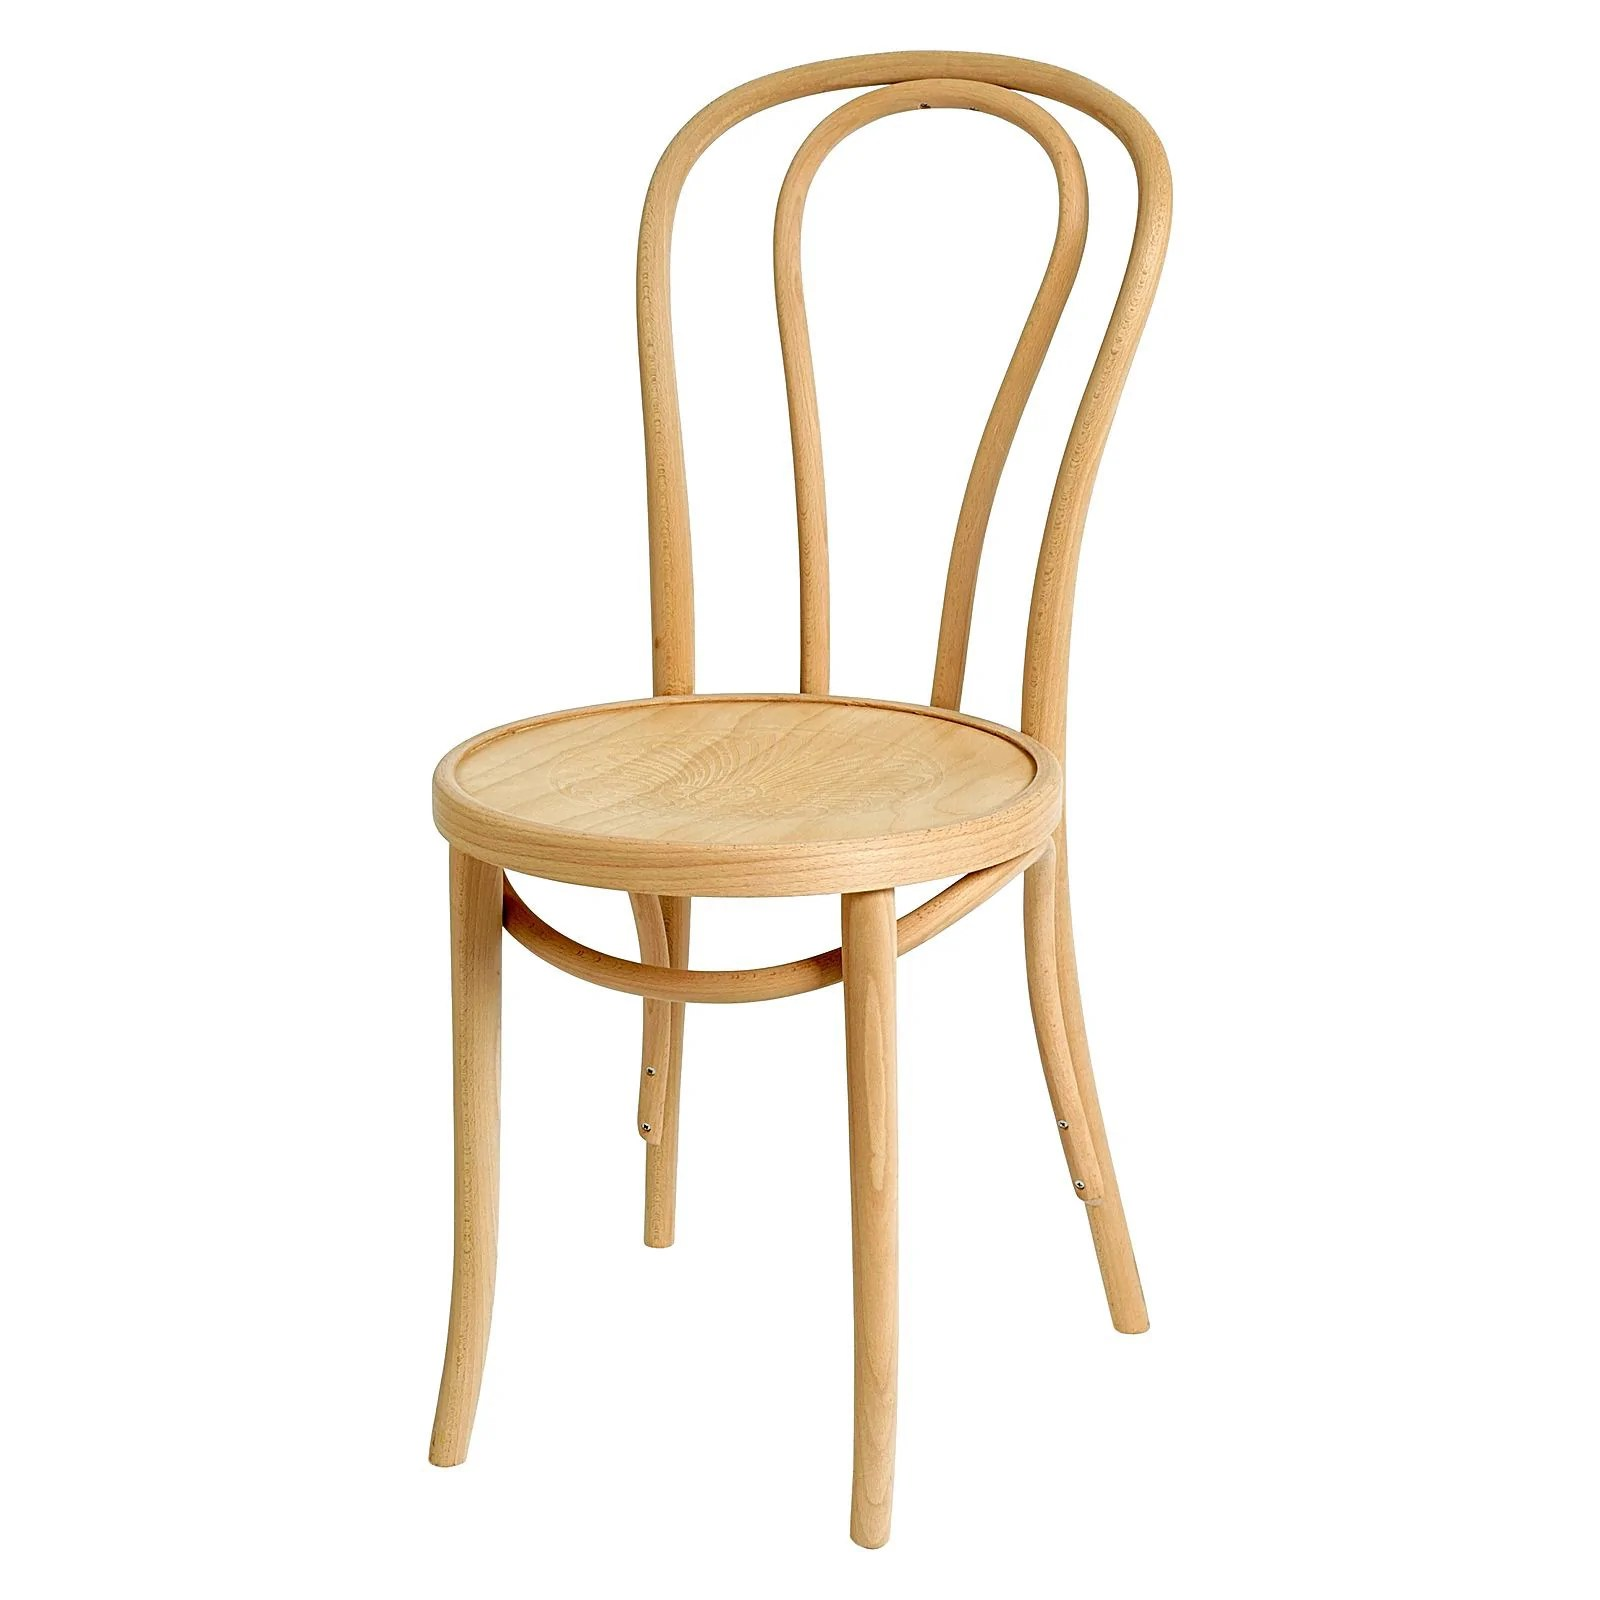 Bentwood Chairs Melbourne Dining Chairs Commercial Restaurant Hospitality Chairs